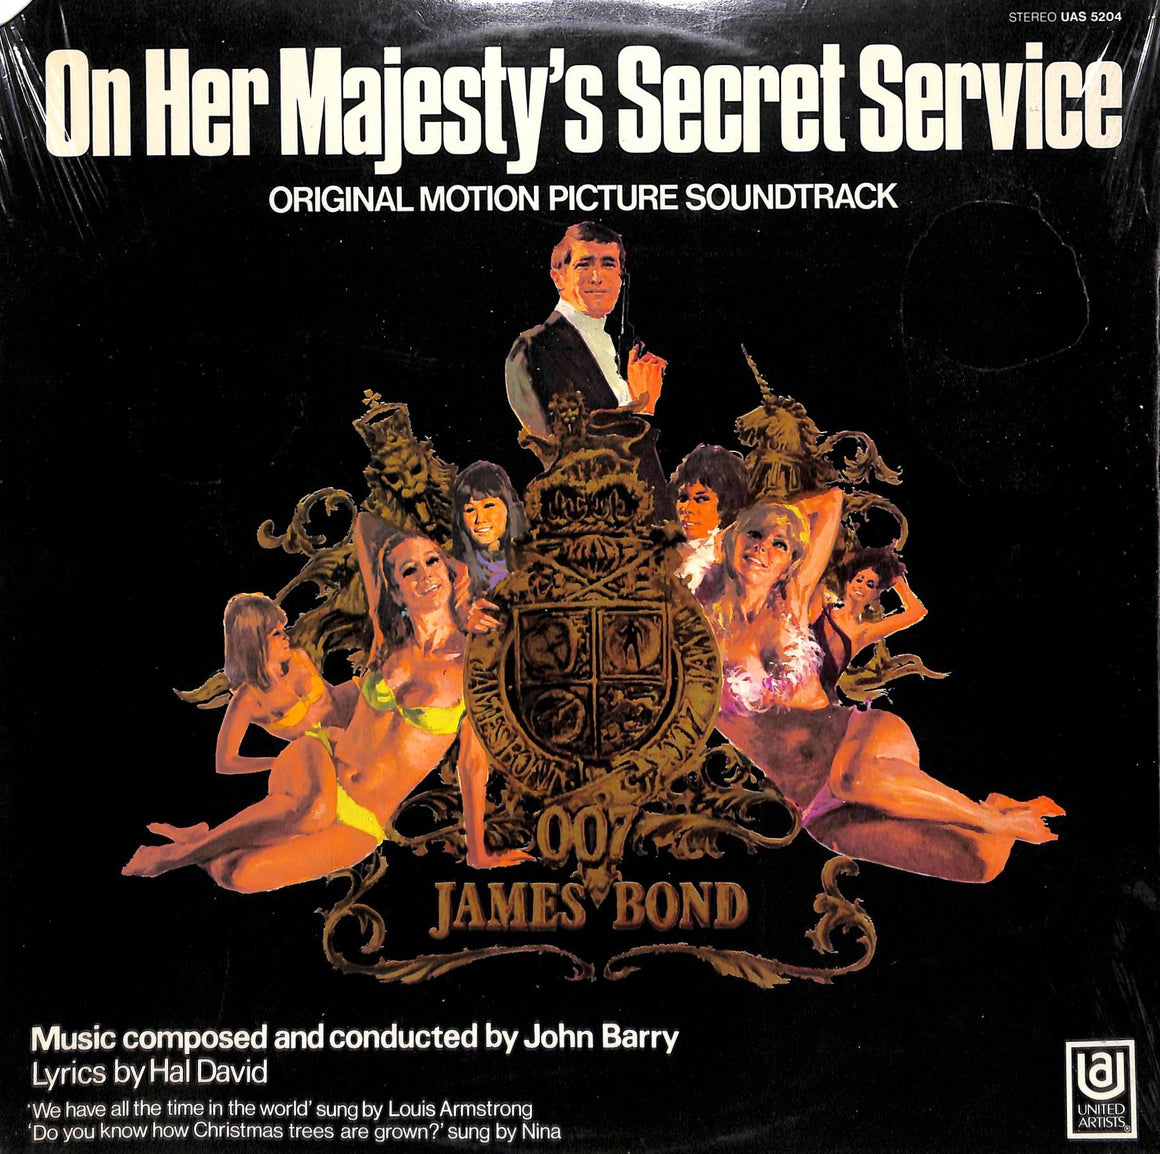 On Her Majesty's Secret Service Original Motion Picture Soundtrack